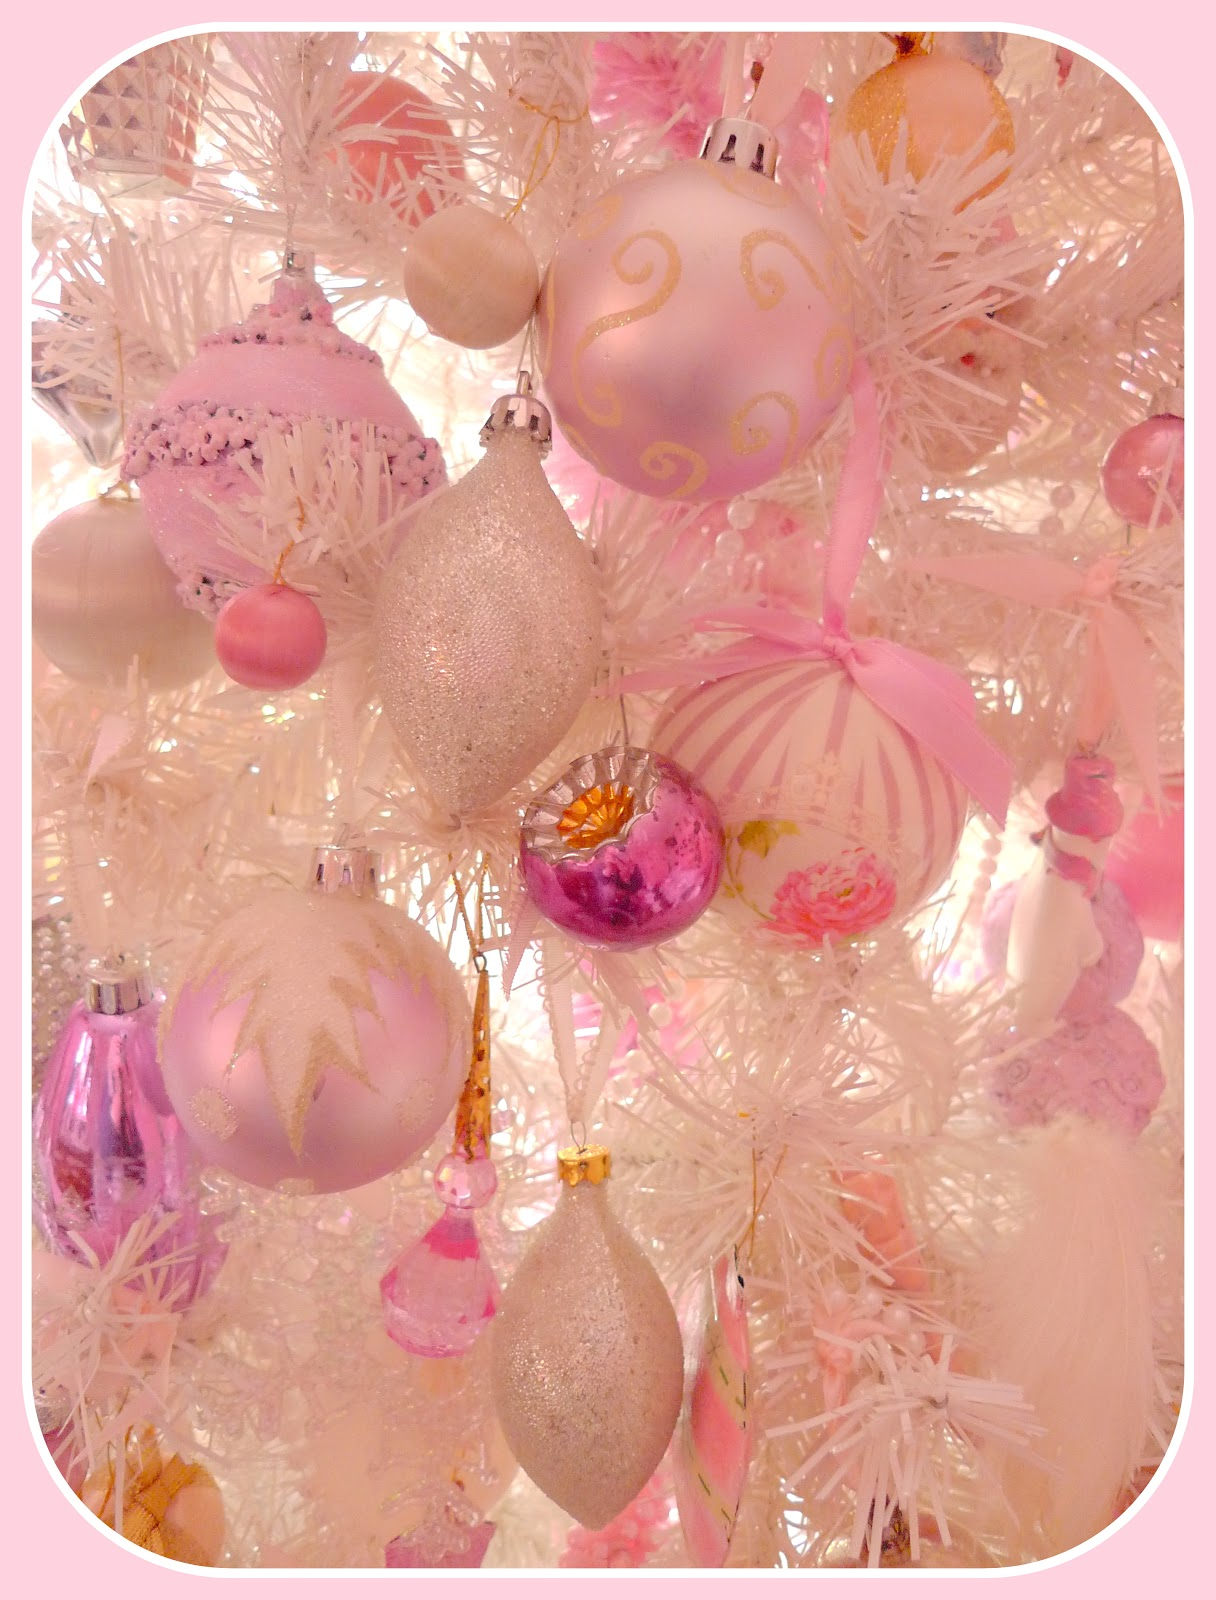 My shabby french life sapin rose et blanc ou sapin blanc - Sapin de noel rose et blanc ...